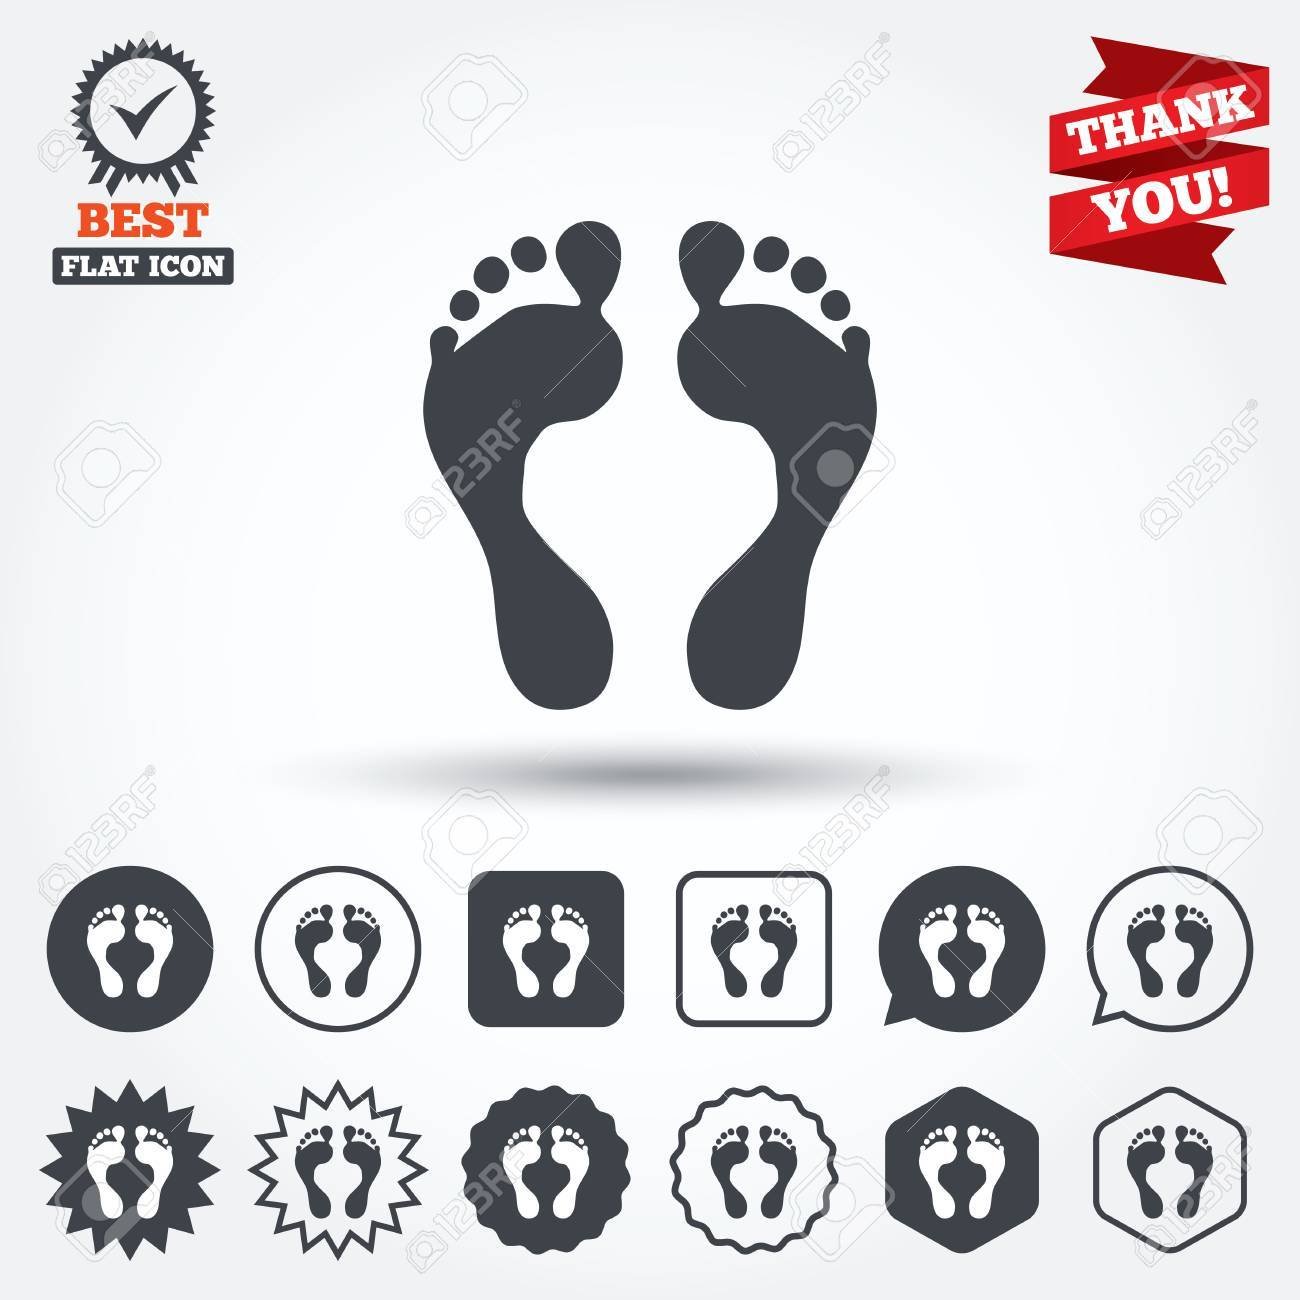 Human footprint sign icon  Barefoot symbol  Foot silhouette